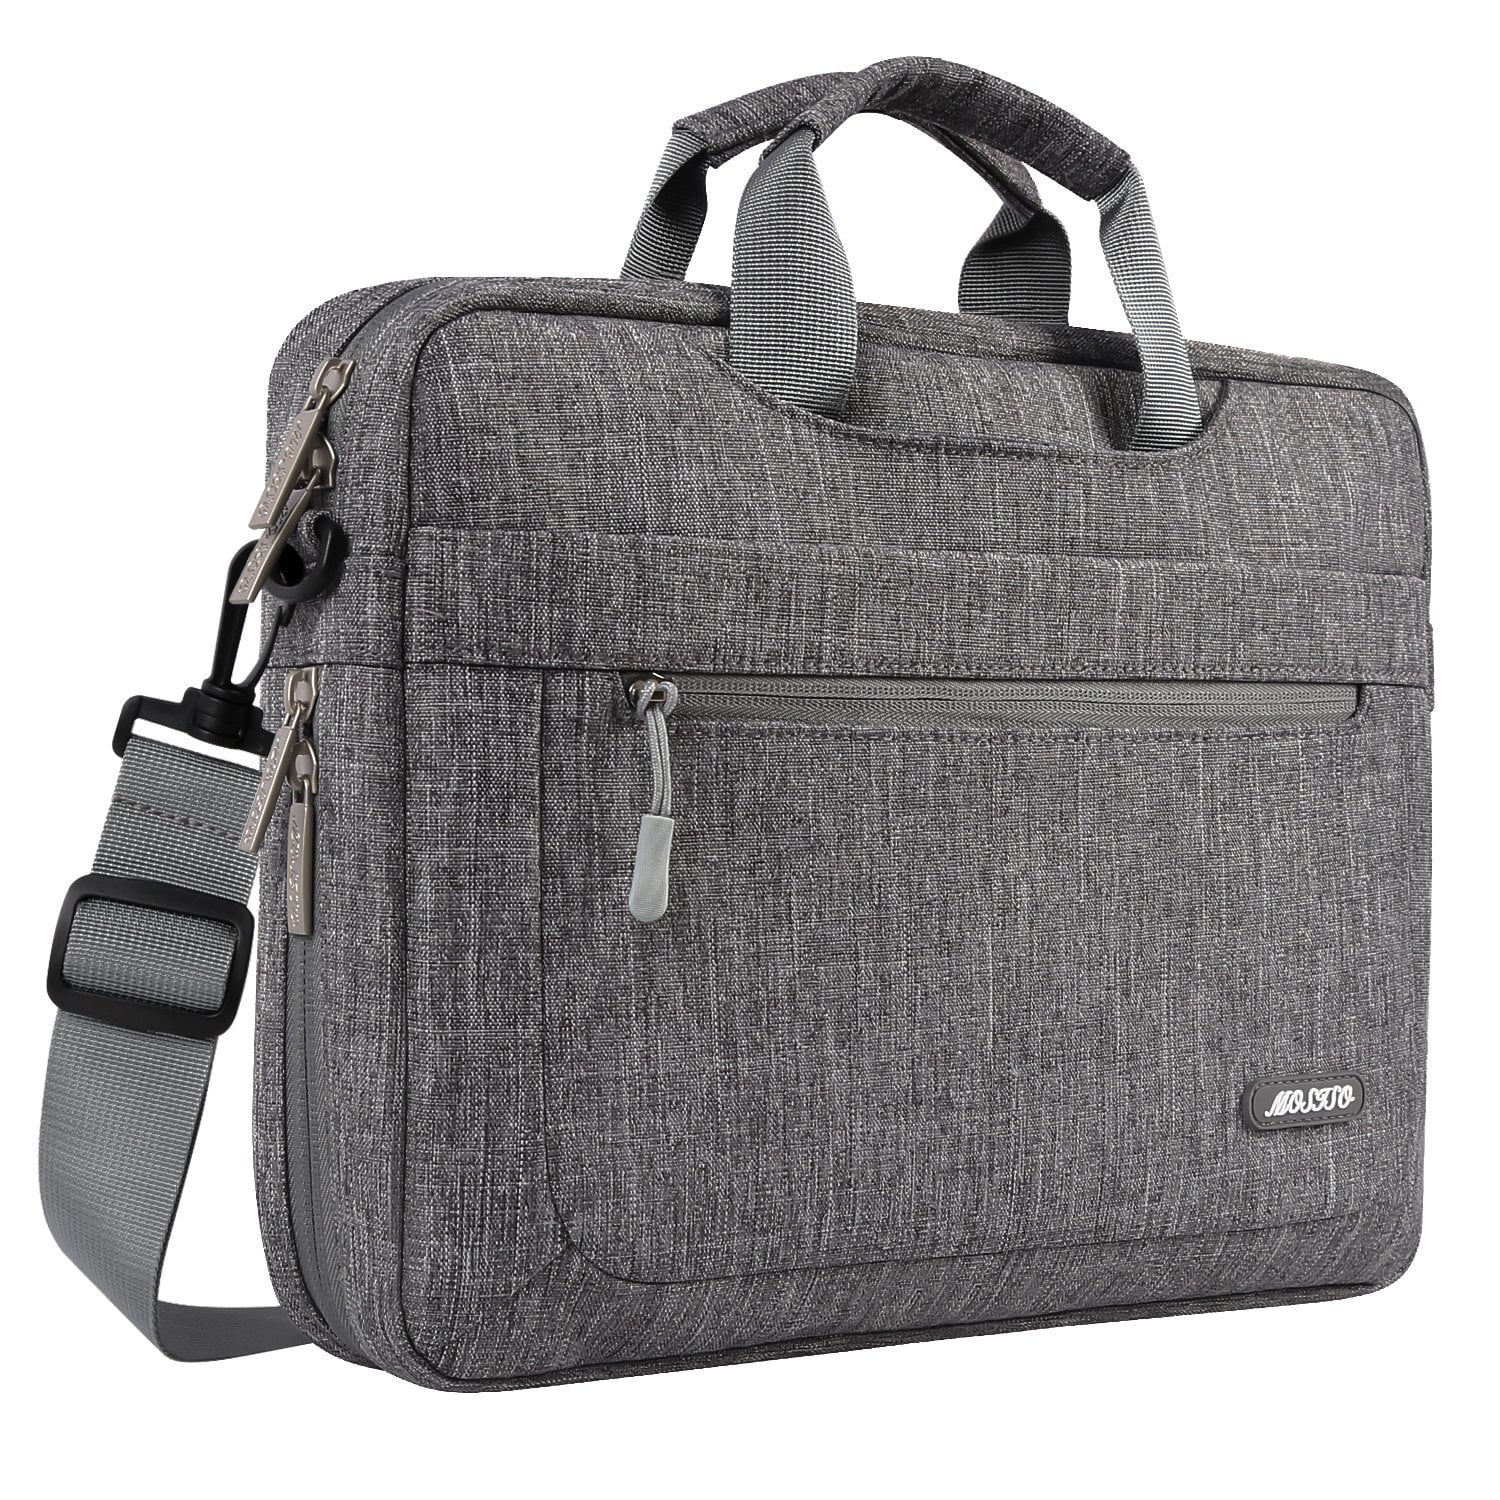 13 Inch A Large Number of Oral Pills Business Laptop Briefcase with Handle Lightweight Briefcase for Laptop Fits MacBook Air Pro